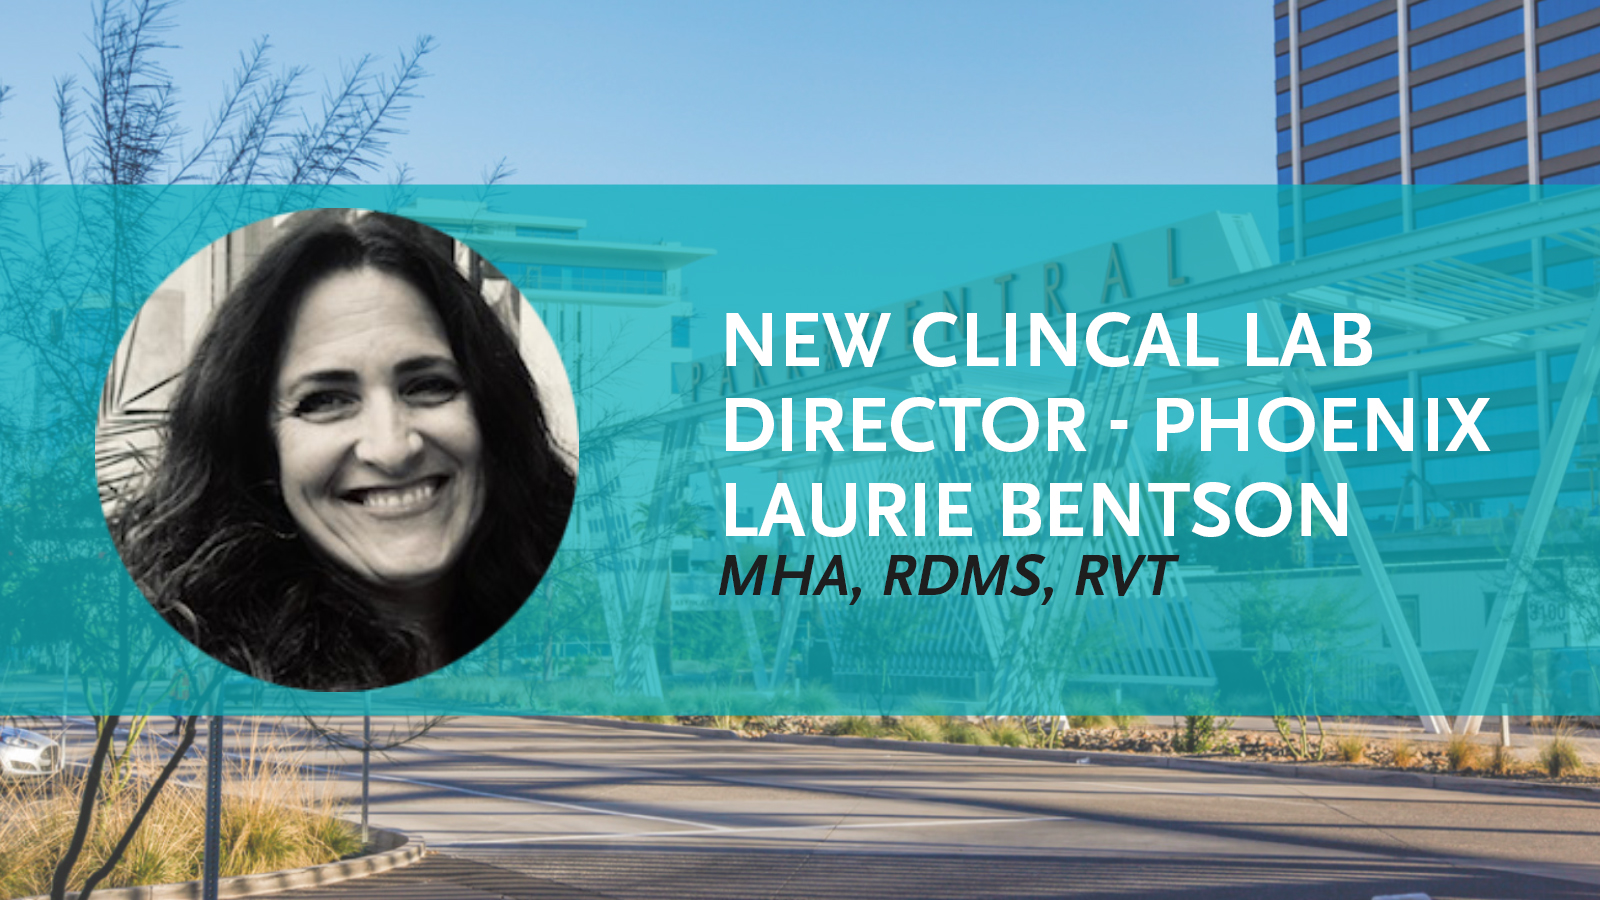 New Phoenix Clinical Lab Director Laurie Bentson